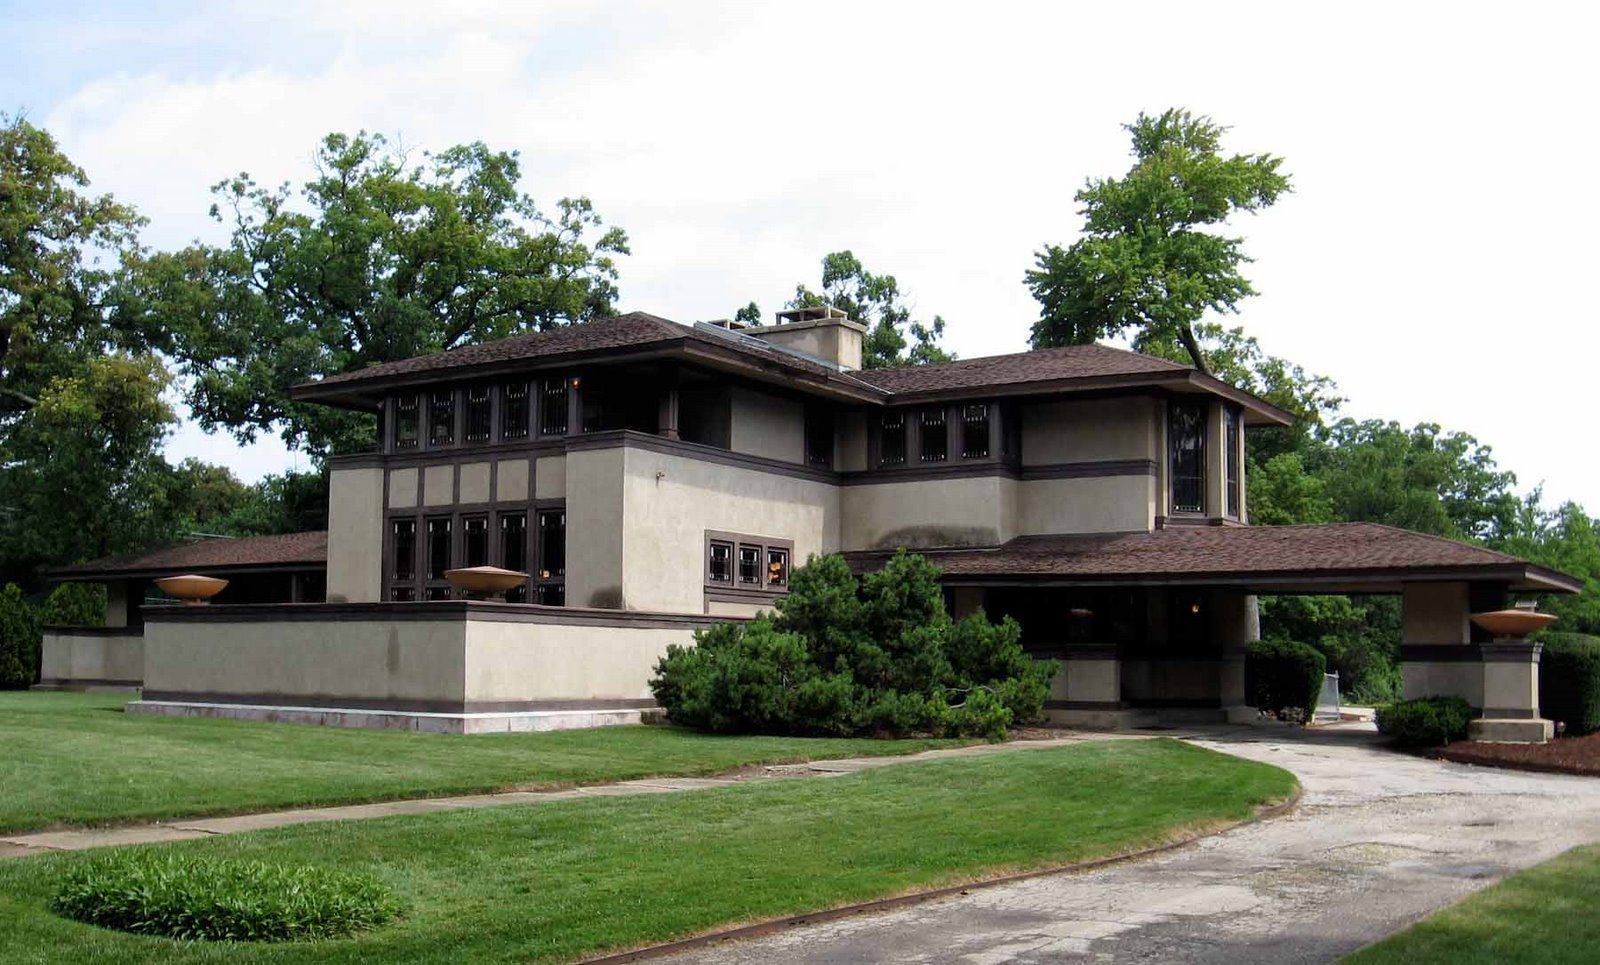 the 1901 ward willets house in highland park widely regarded as